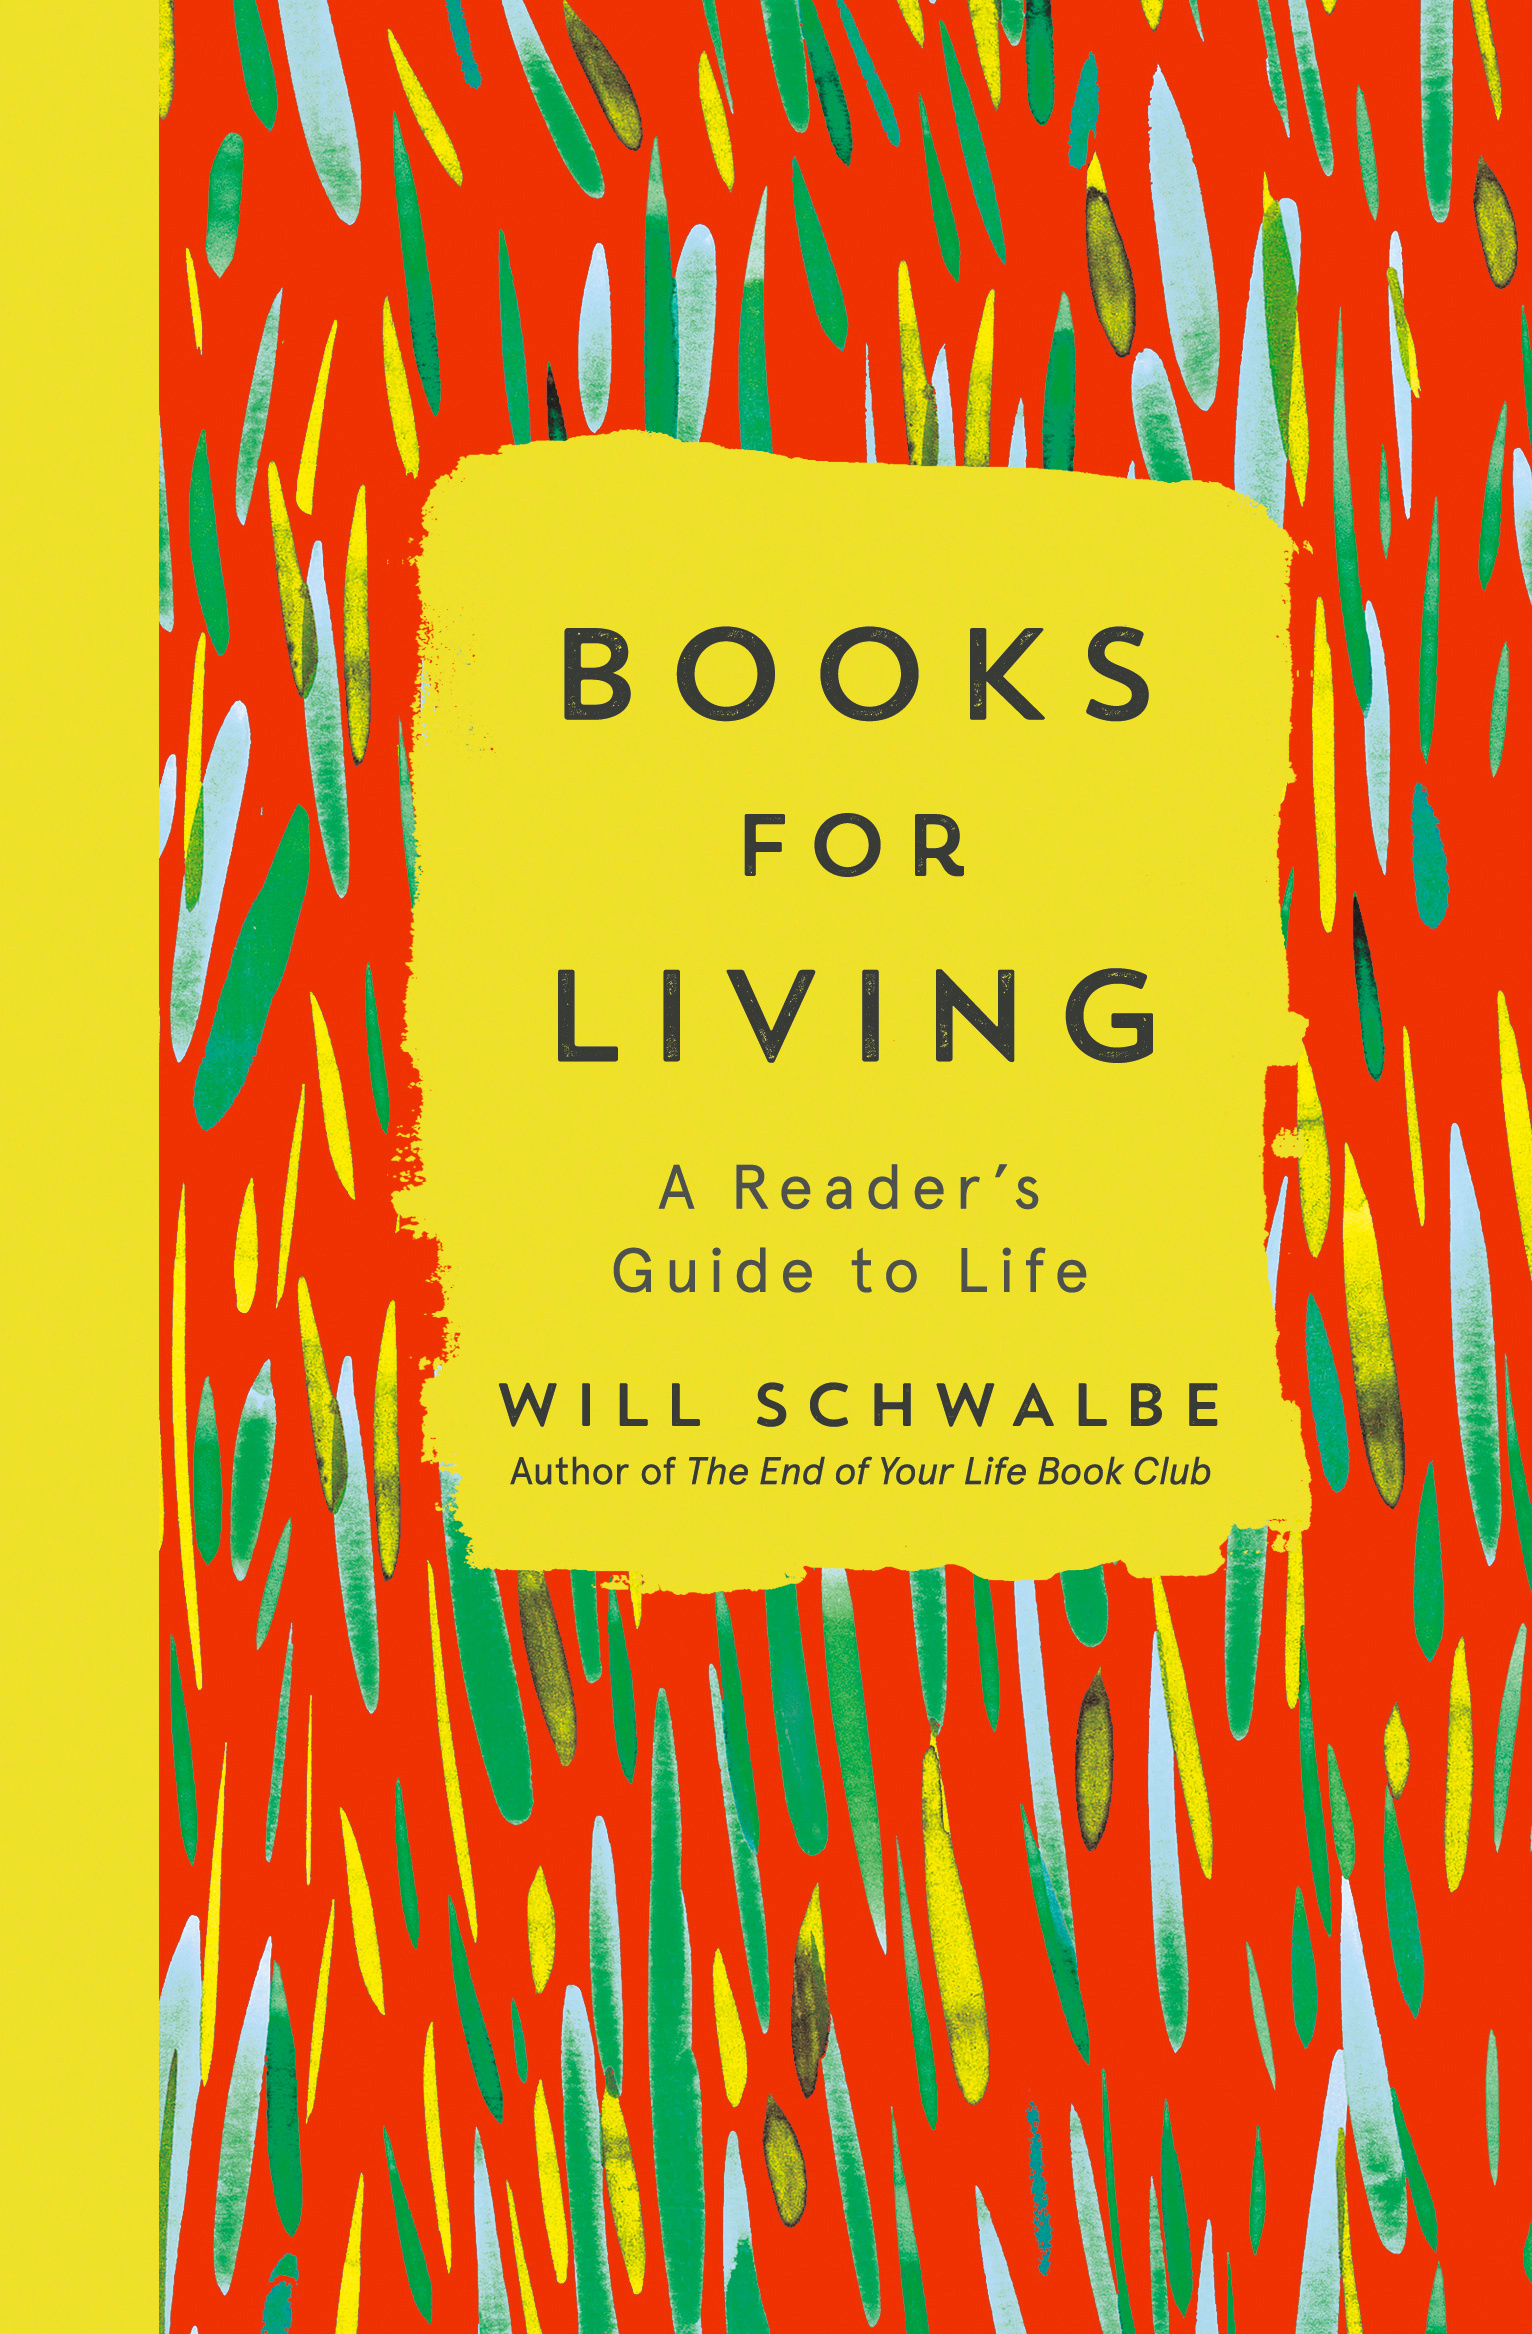 books for living a reader s guide to life by will schwalbe books